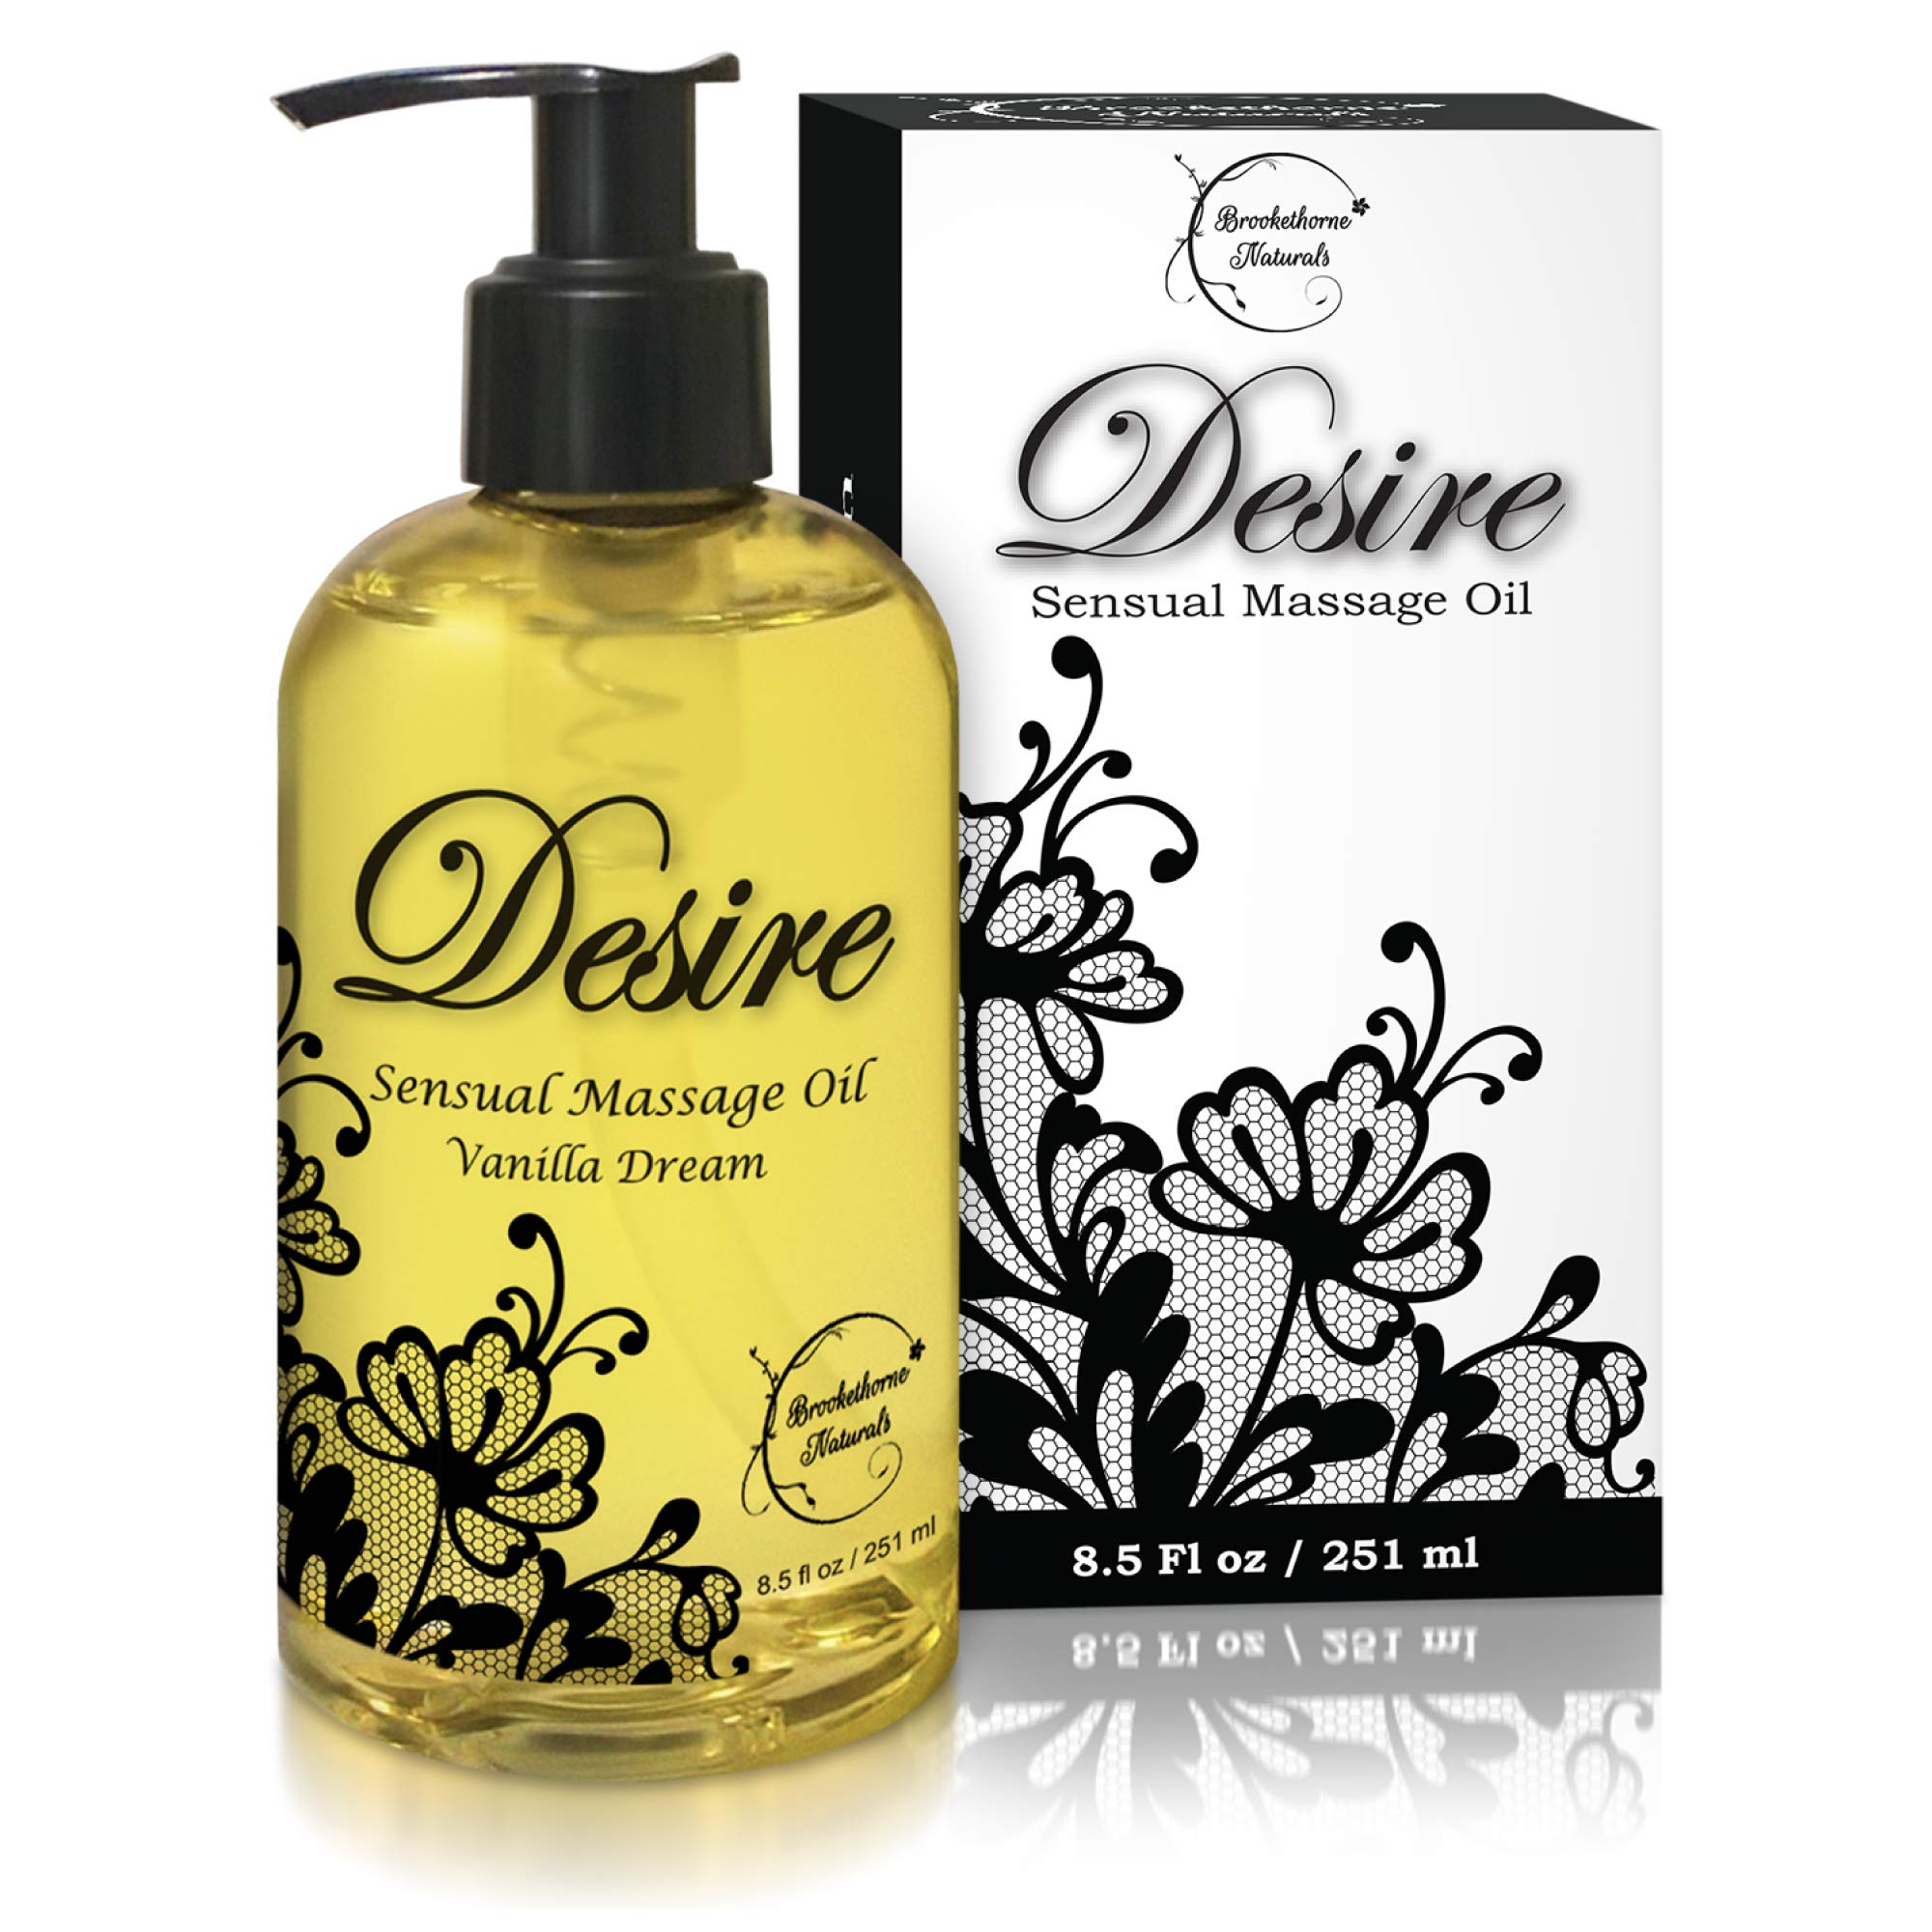 Desire Sensual Massage Oil - Best Massage Oil for Couples Massage - Perfect Gift for Her - All Natural - Contains Sweet Almond, Grapeseed & Jojoba Oil for Smooth Skin 8.5oz by Brookethorne Naturals